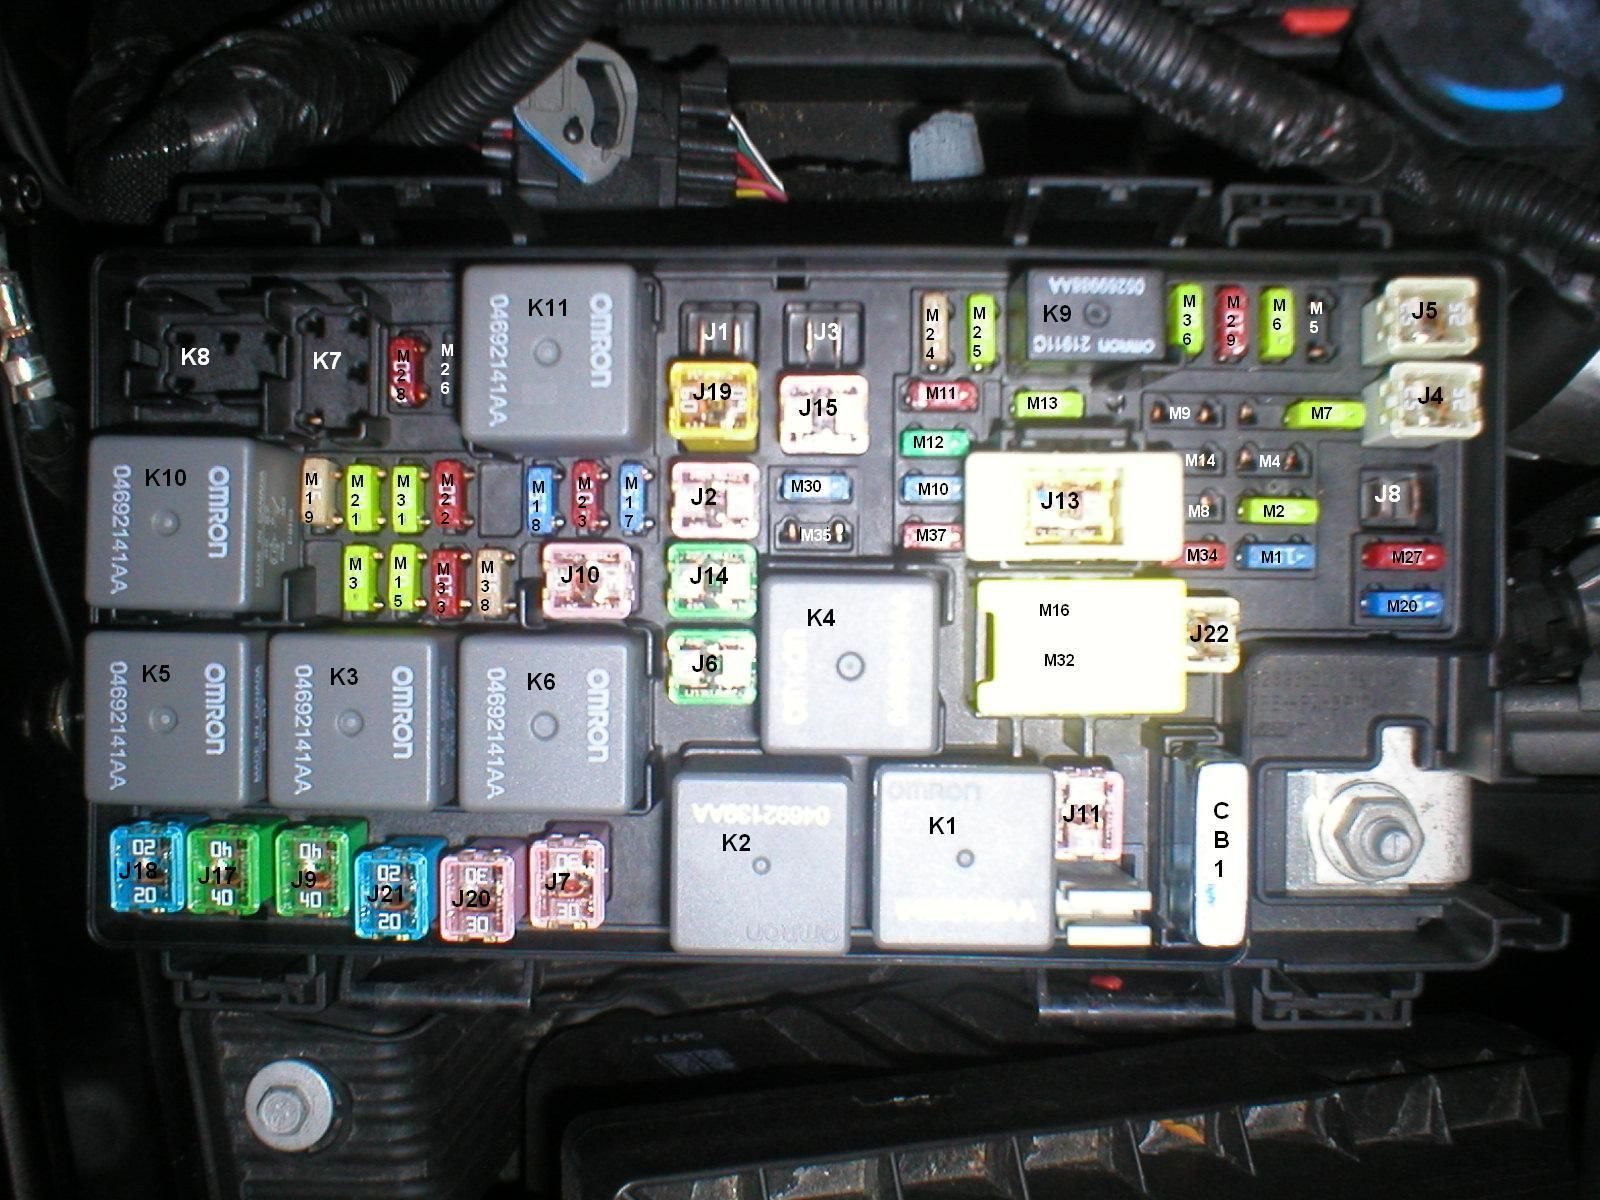 hight resolution of 2007 jeep fuse box wiring diagram 2000 jeep cherokee fuse wiring diagram 2007 jeep fuse box